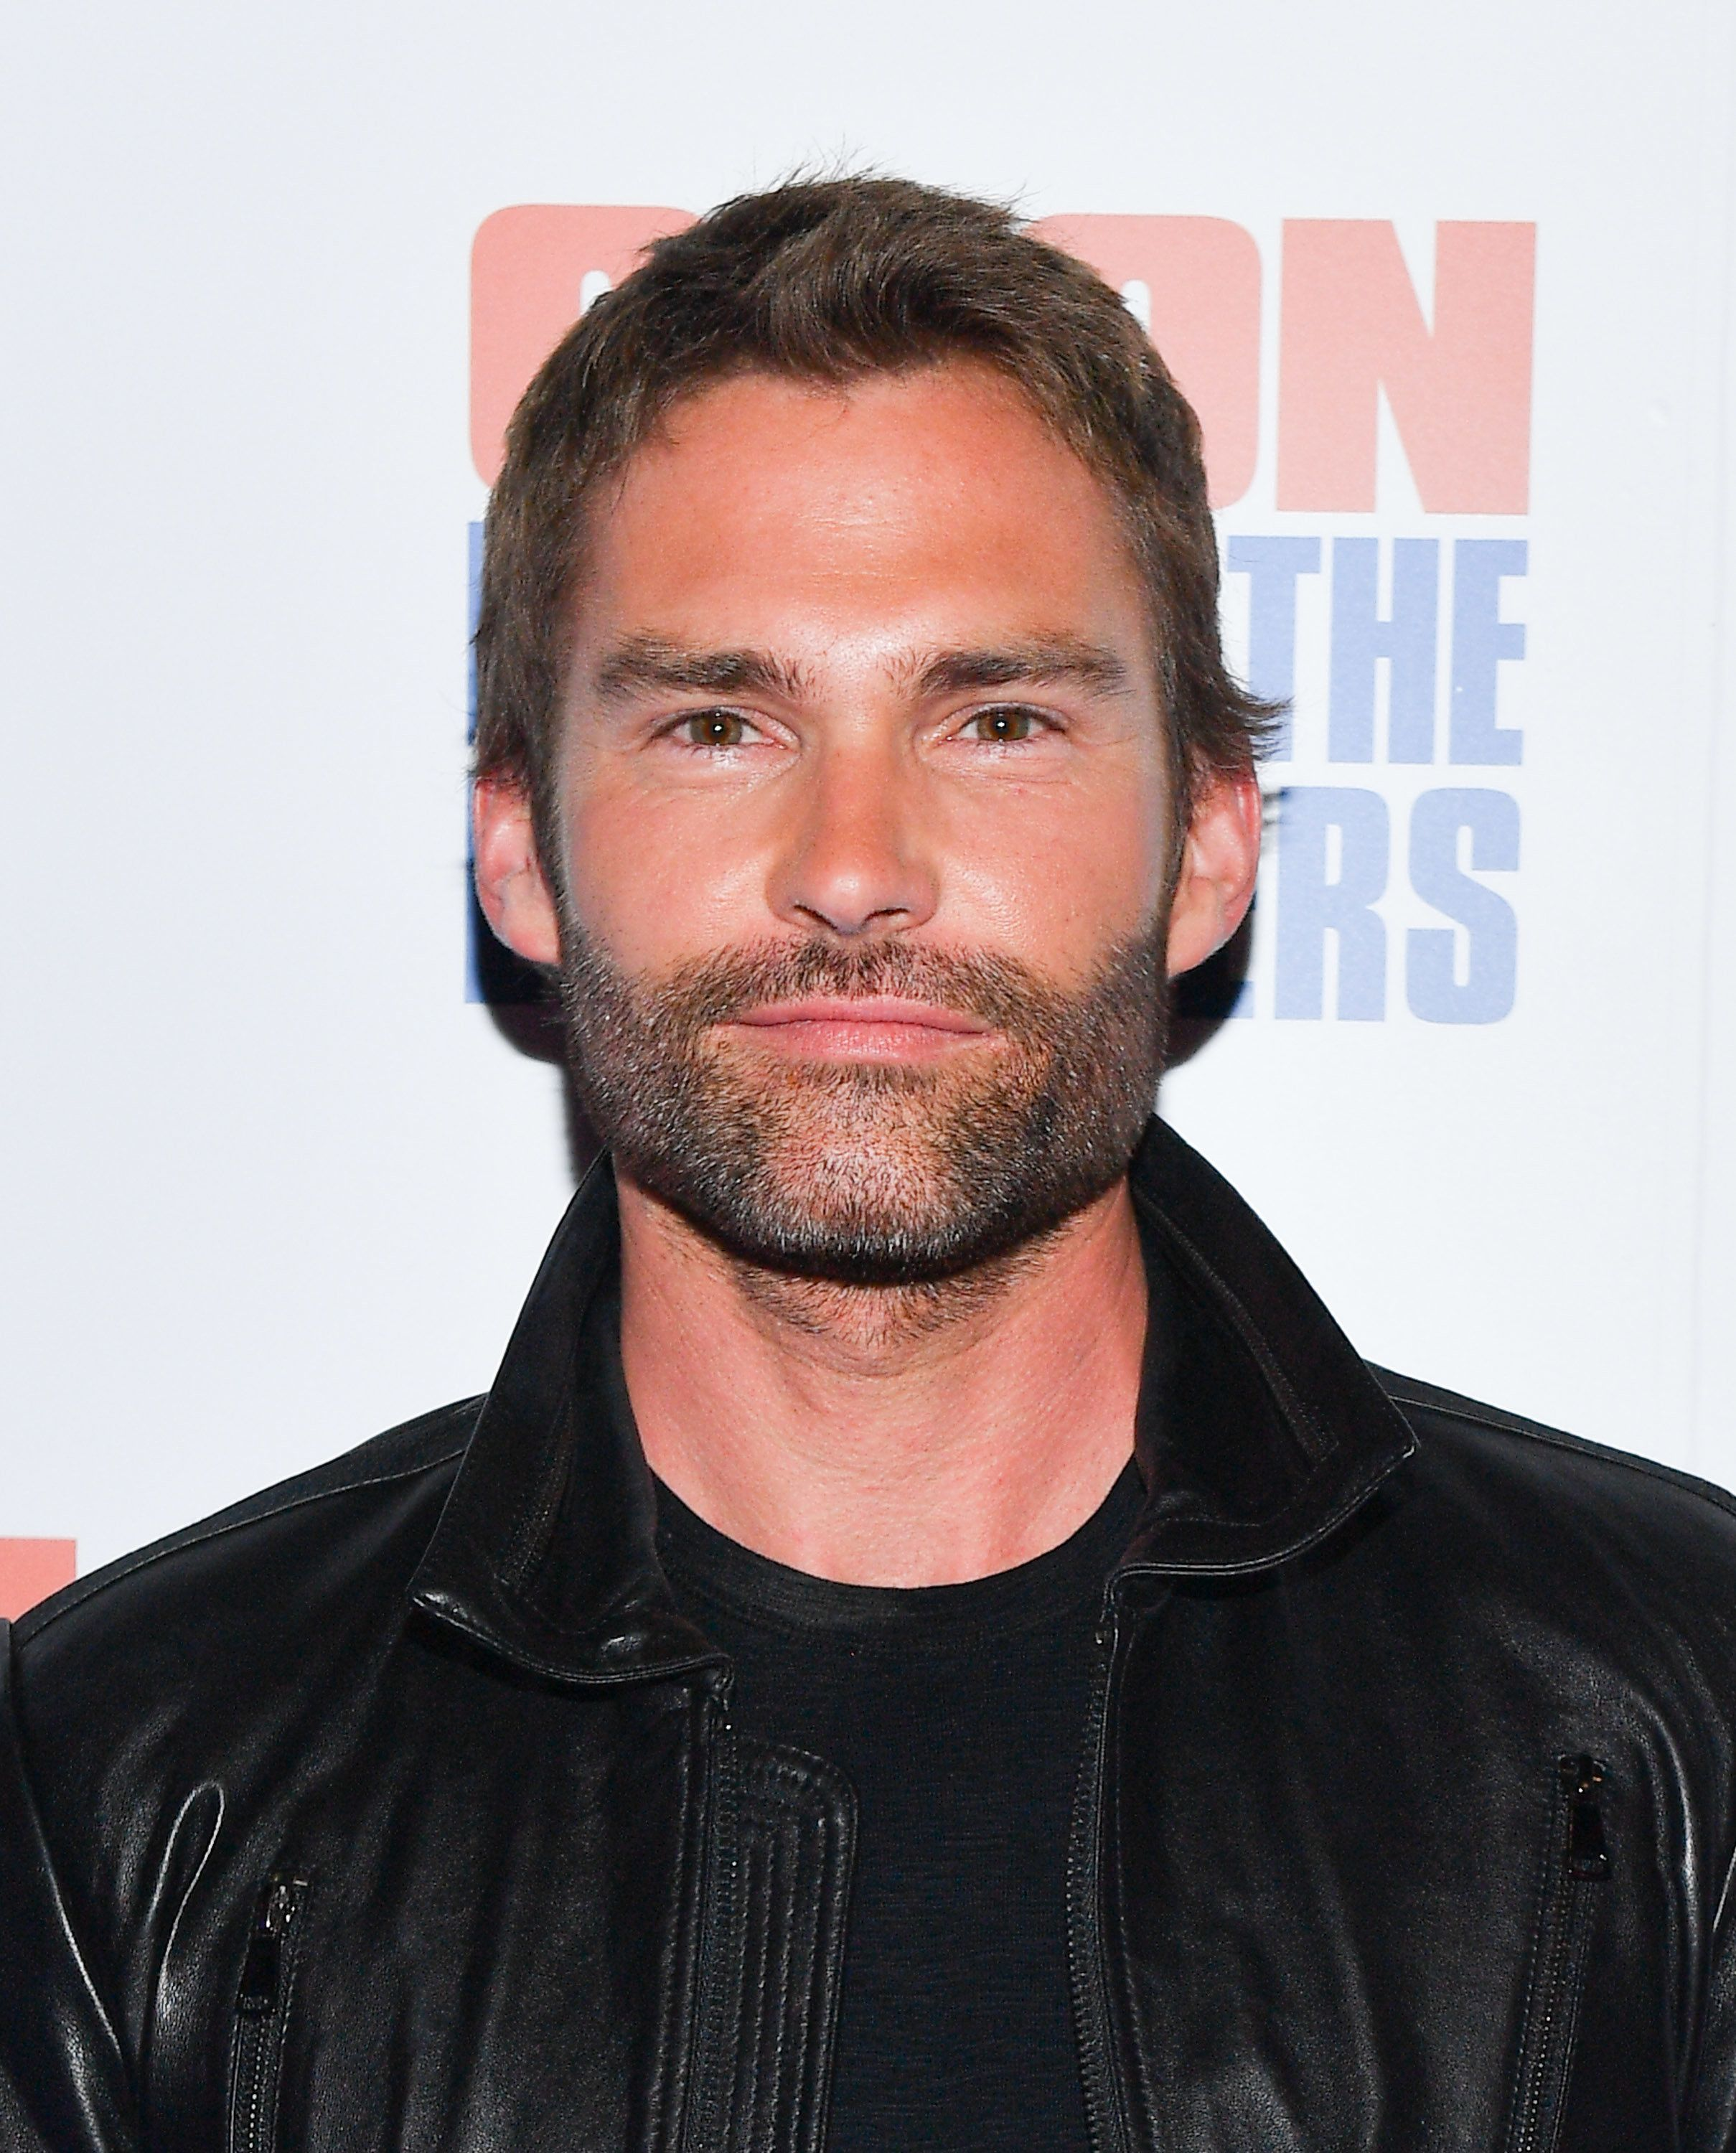 Seann William Scott's credits include